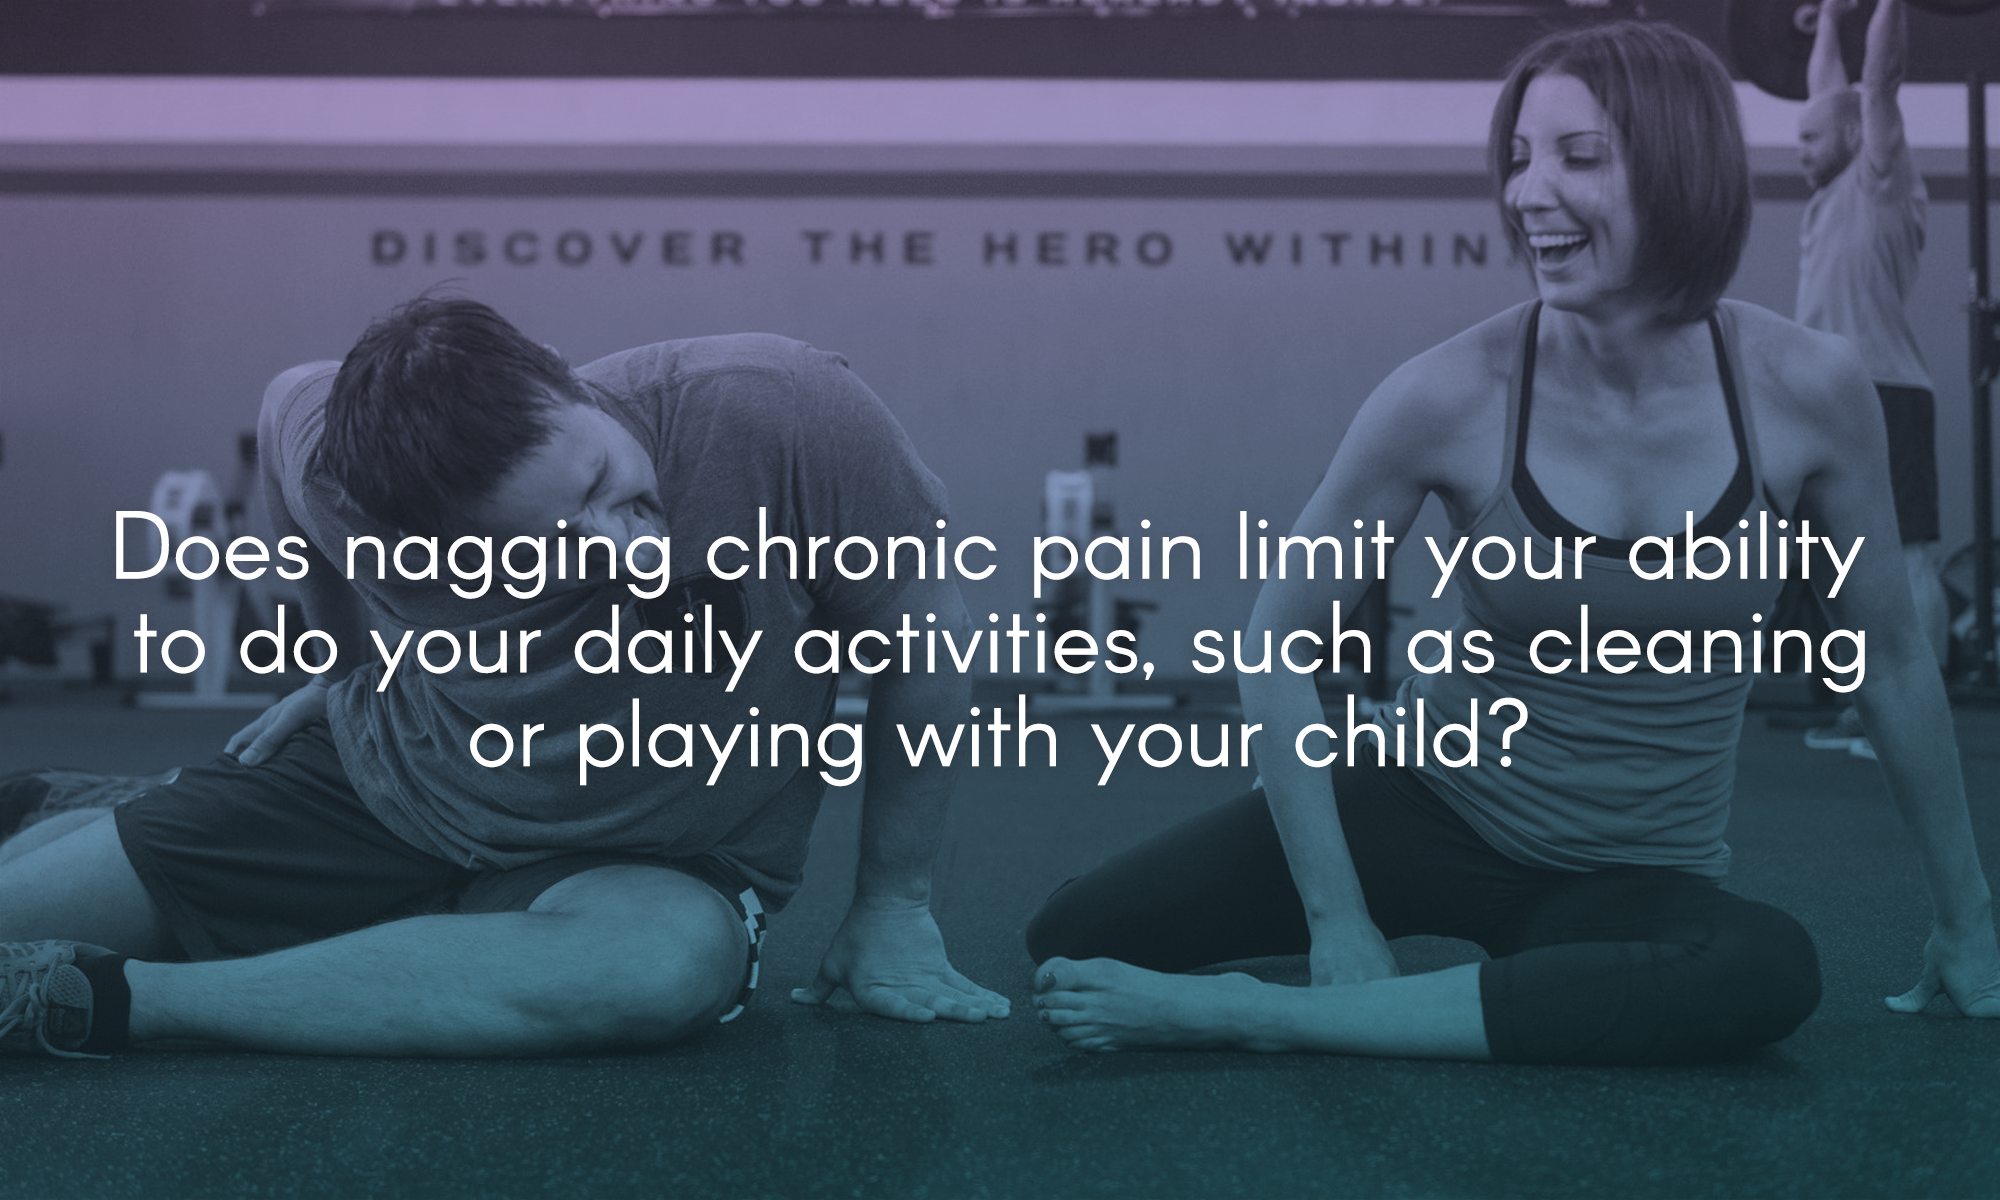 Does nagging chronic pain limit your ability to do your daily activities, such as cleaning or playing with your child?